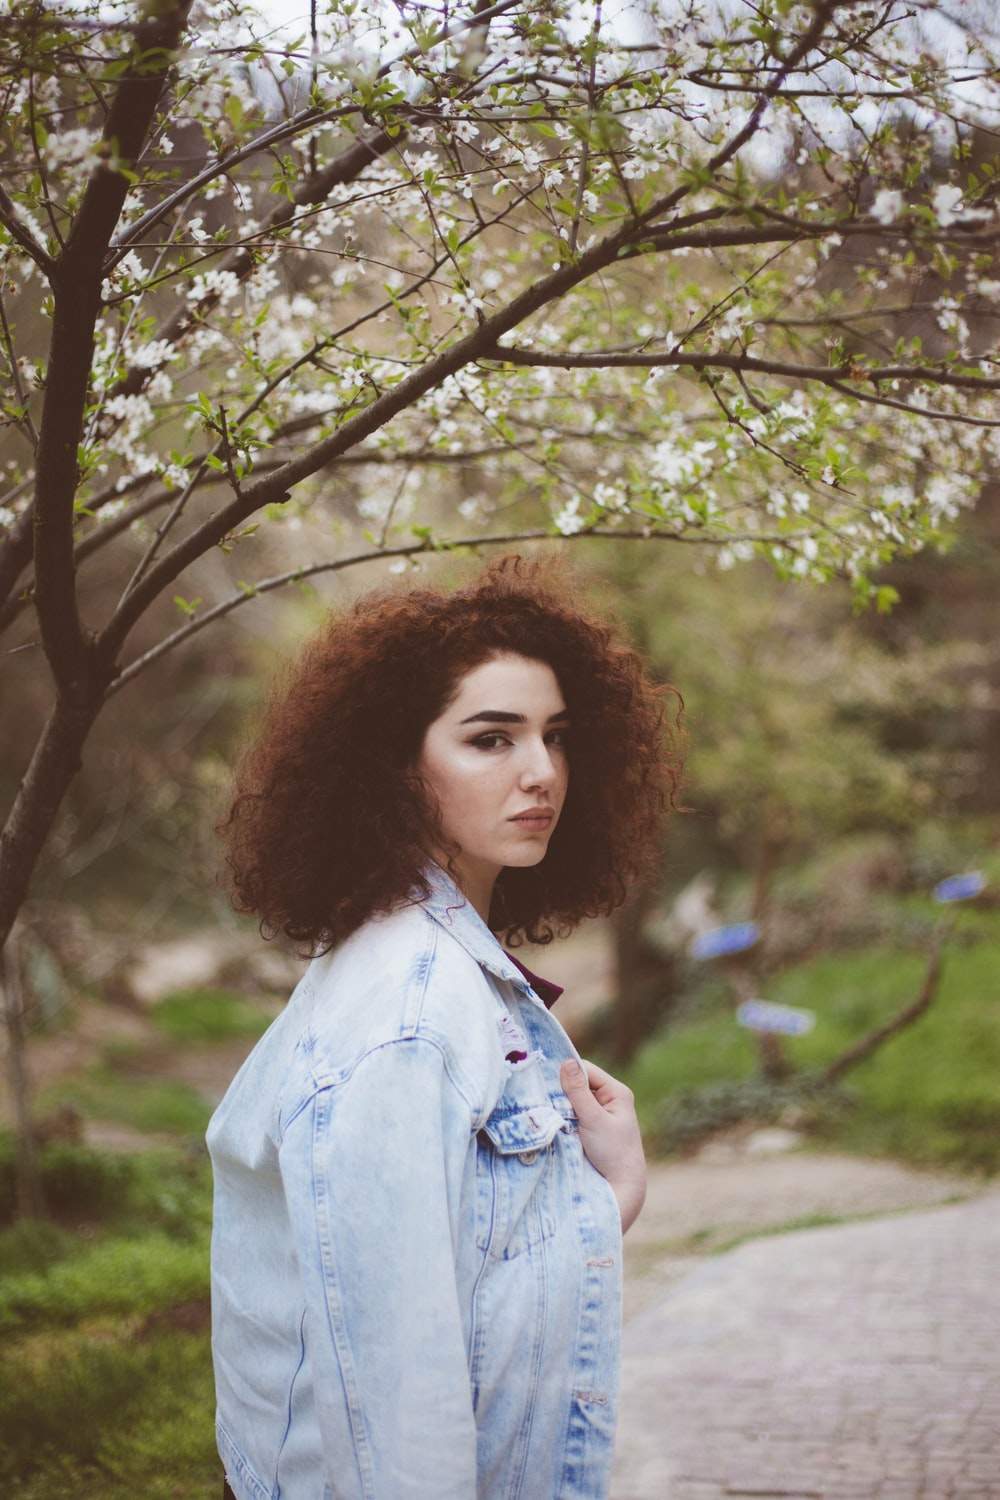 woman wearing gray and blue acid wash denim jacket under tree branches